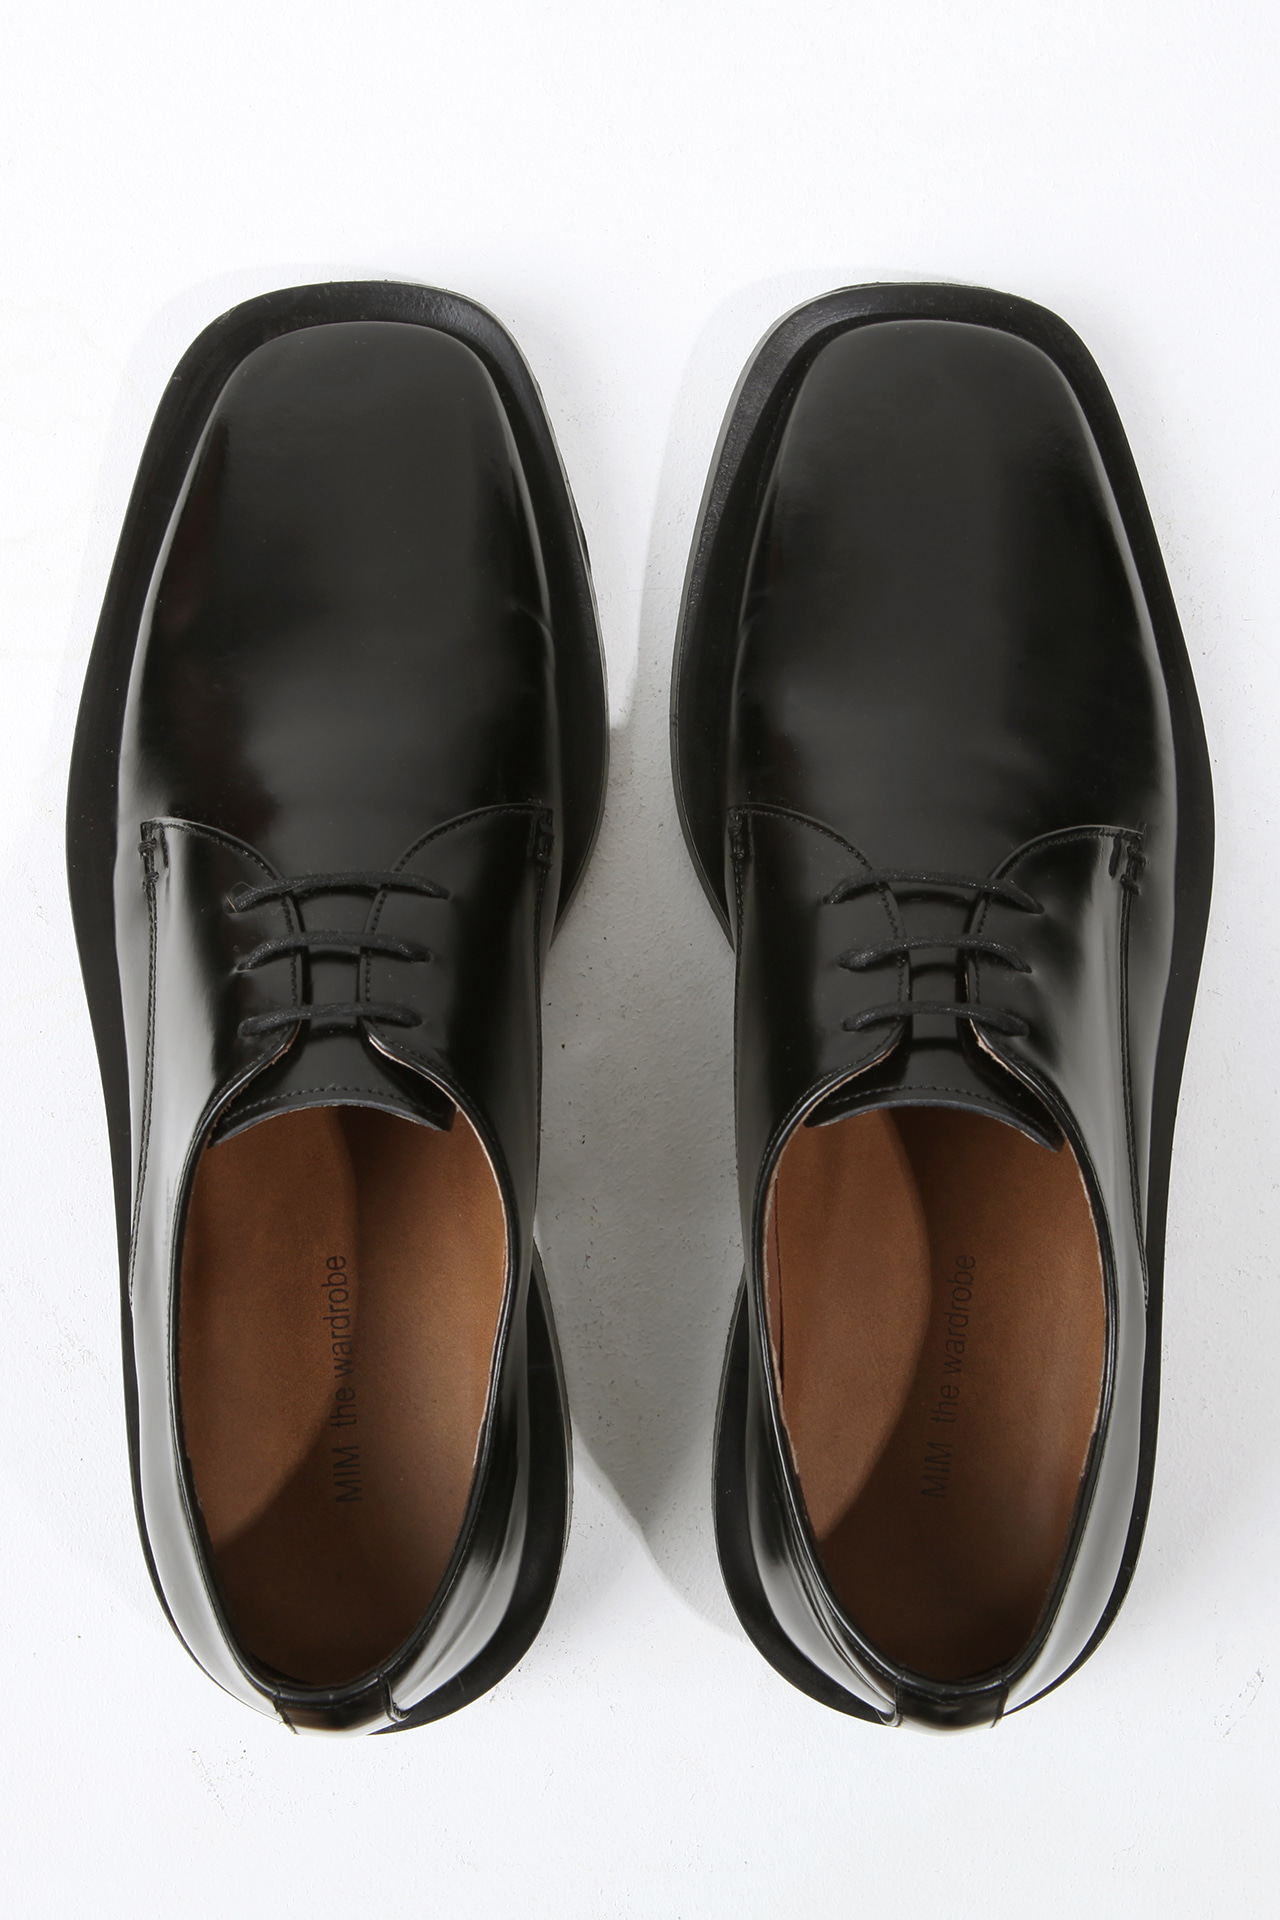 MINIMAL Leather Wide-Sole Derby Shoes